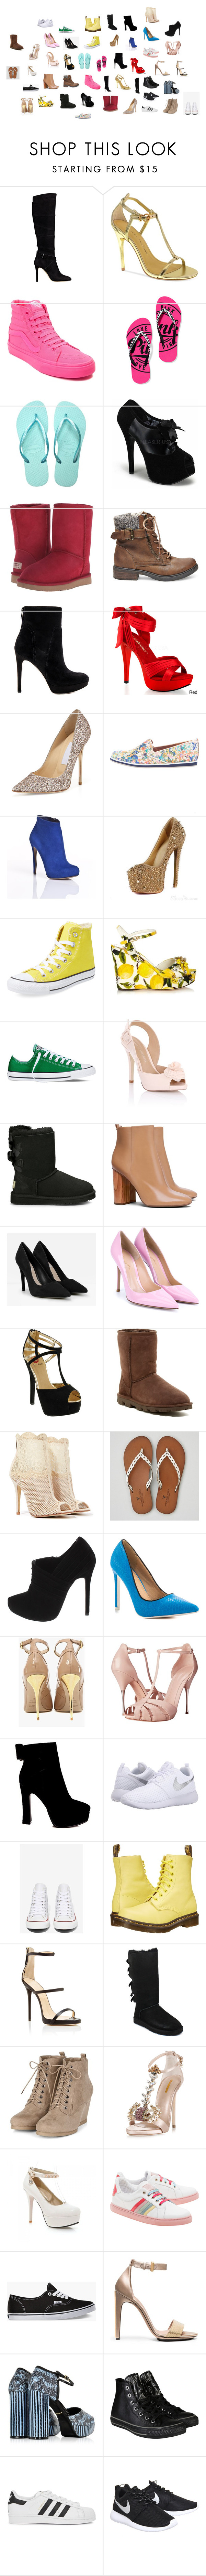 """""""Untitled #2641"""" by vampireprincess1d ❤ liked on Polyvore featuring GUESS, Chinese Laundry, Vans, Havaianas, UGG Australia, Steve Madden, Sam Edelman, Pleaser, Jimmy Choo and Rebecca Minkoff"""